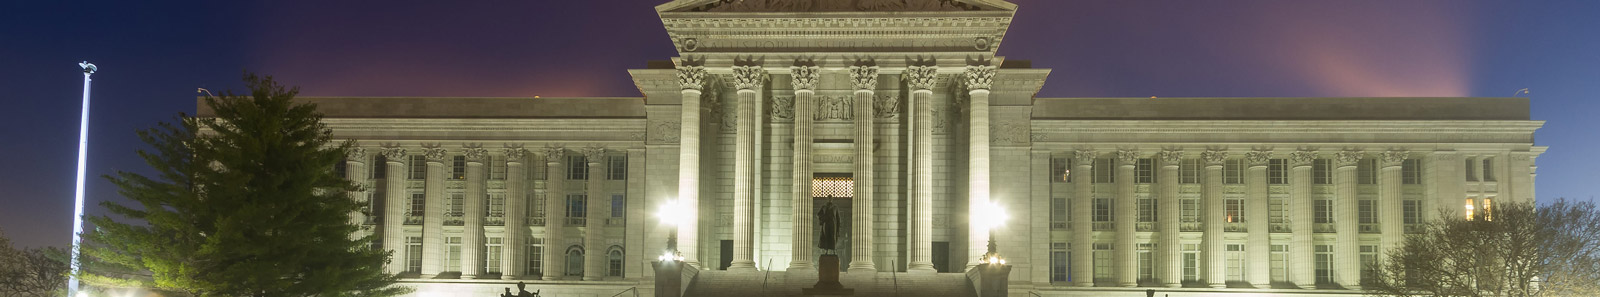 Pictured: The state capitol building in Missouri.